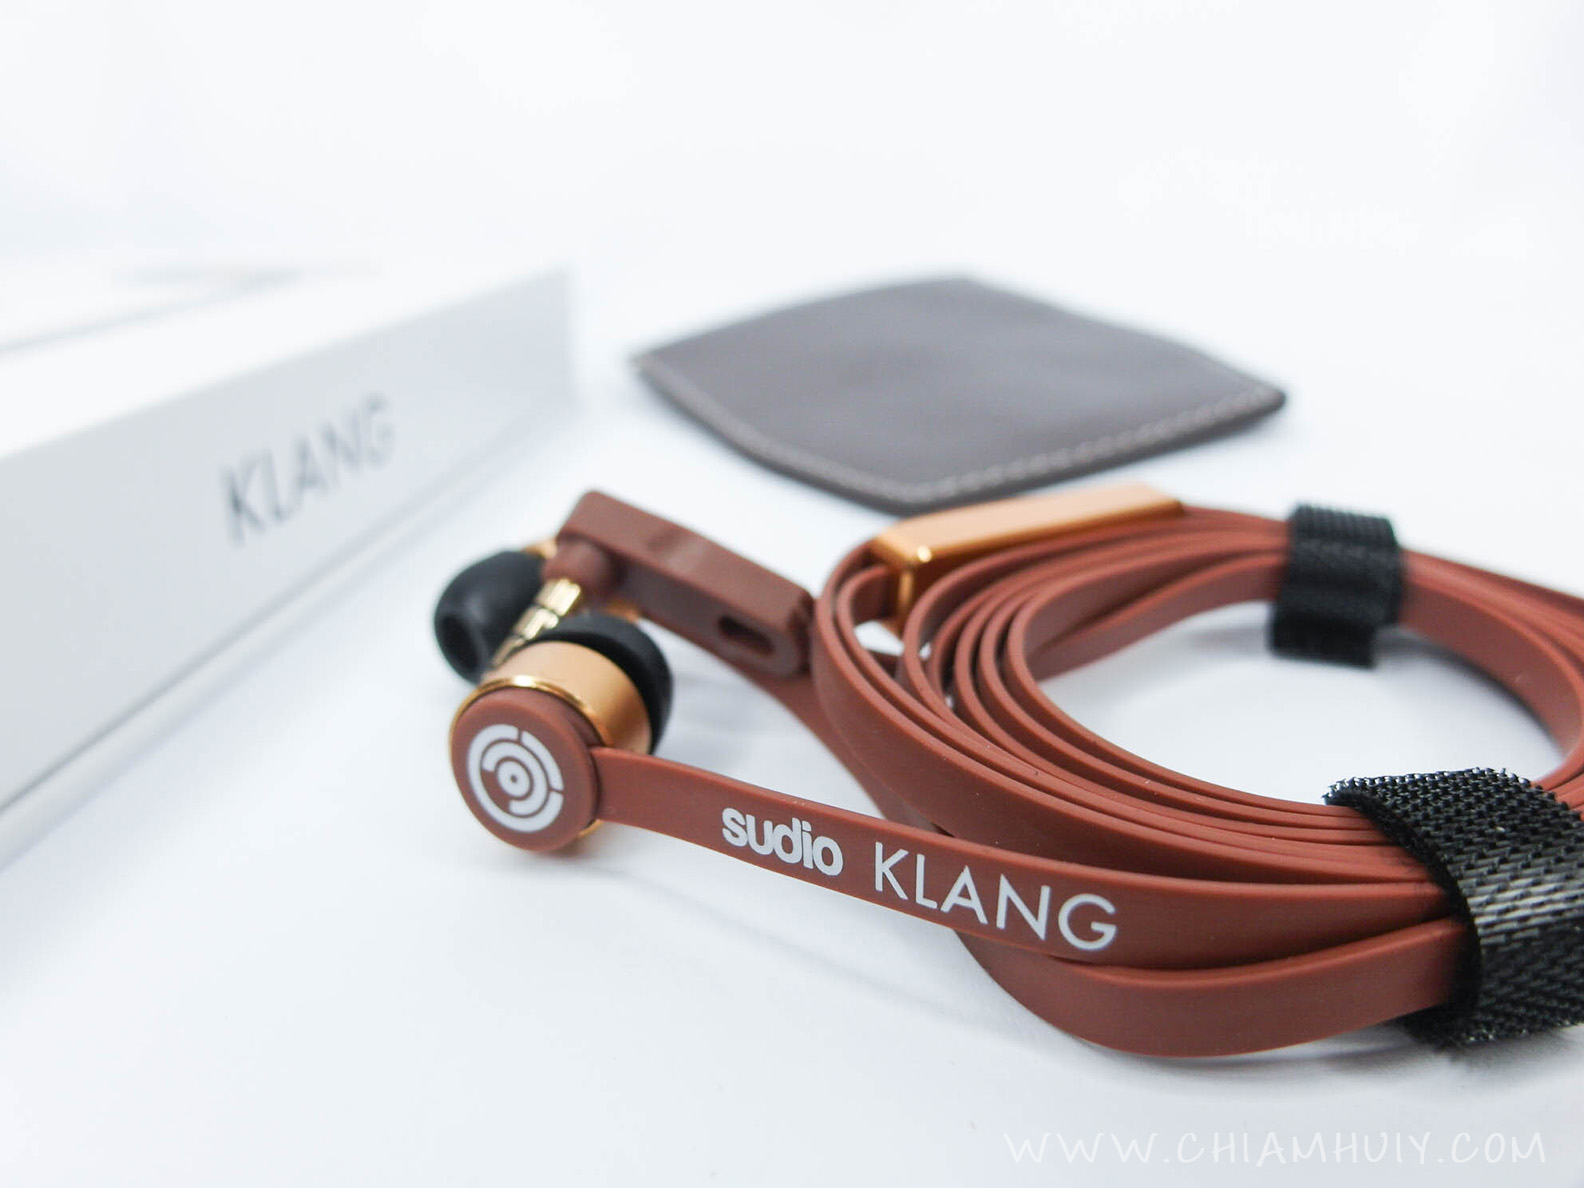 53b499d8397 For our November's subscription box, we will be featuring Sudio Sweden  Klang earpiece valued at $109! We GUARANTEE that you will not find any  other places ...